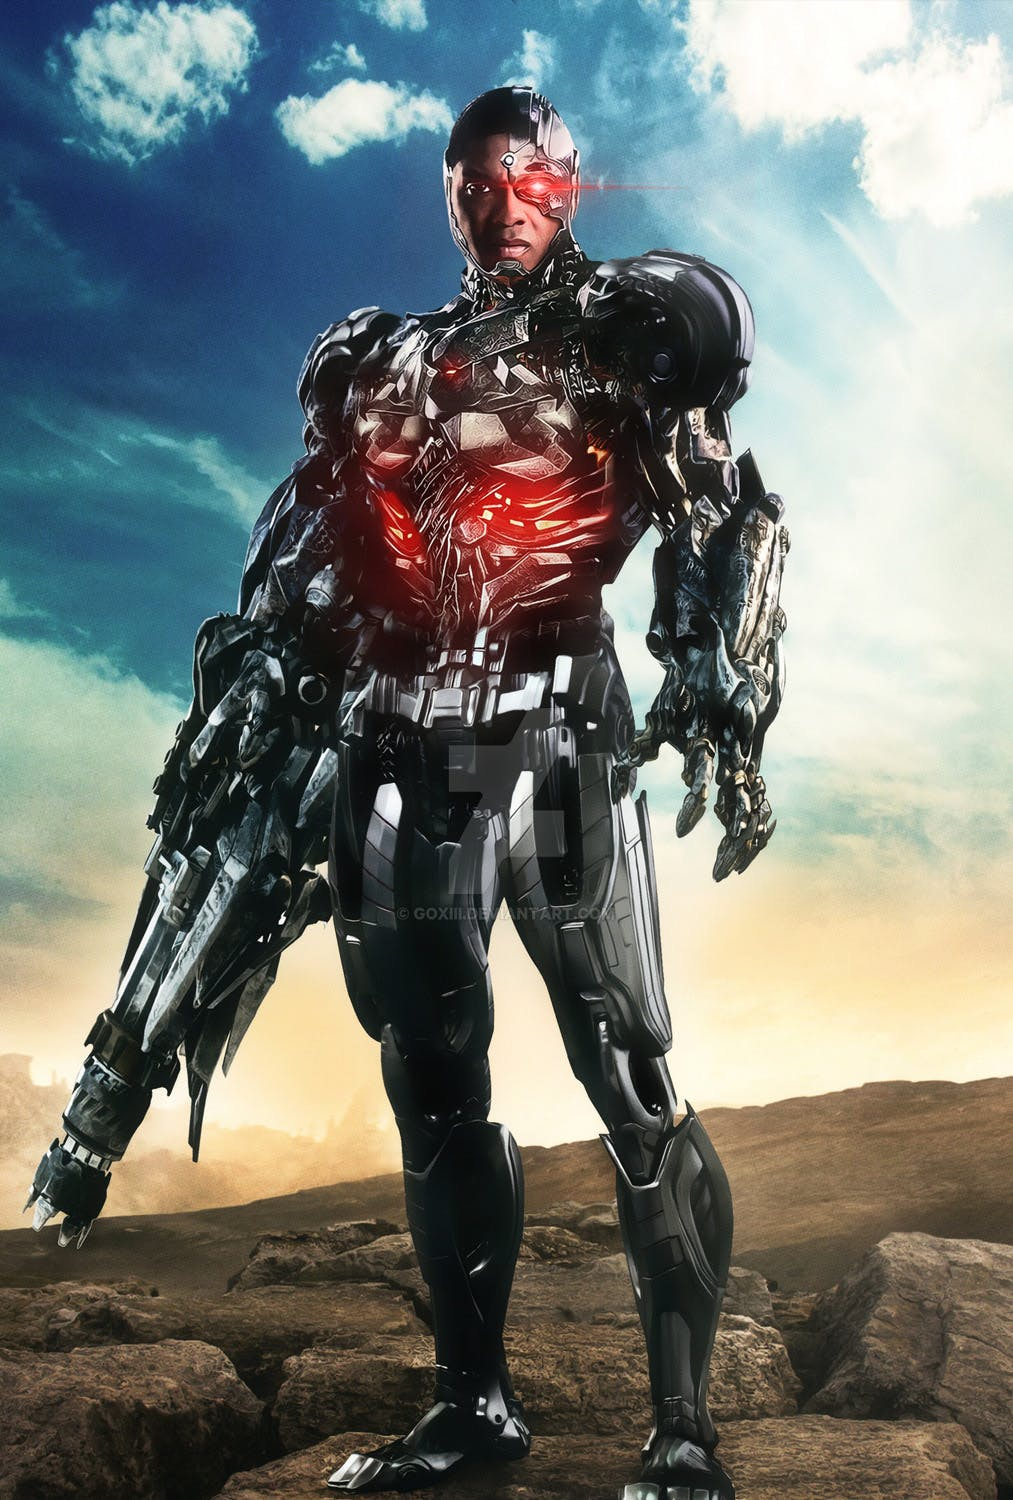 Cyborg (DC Extended Universe)